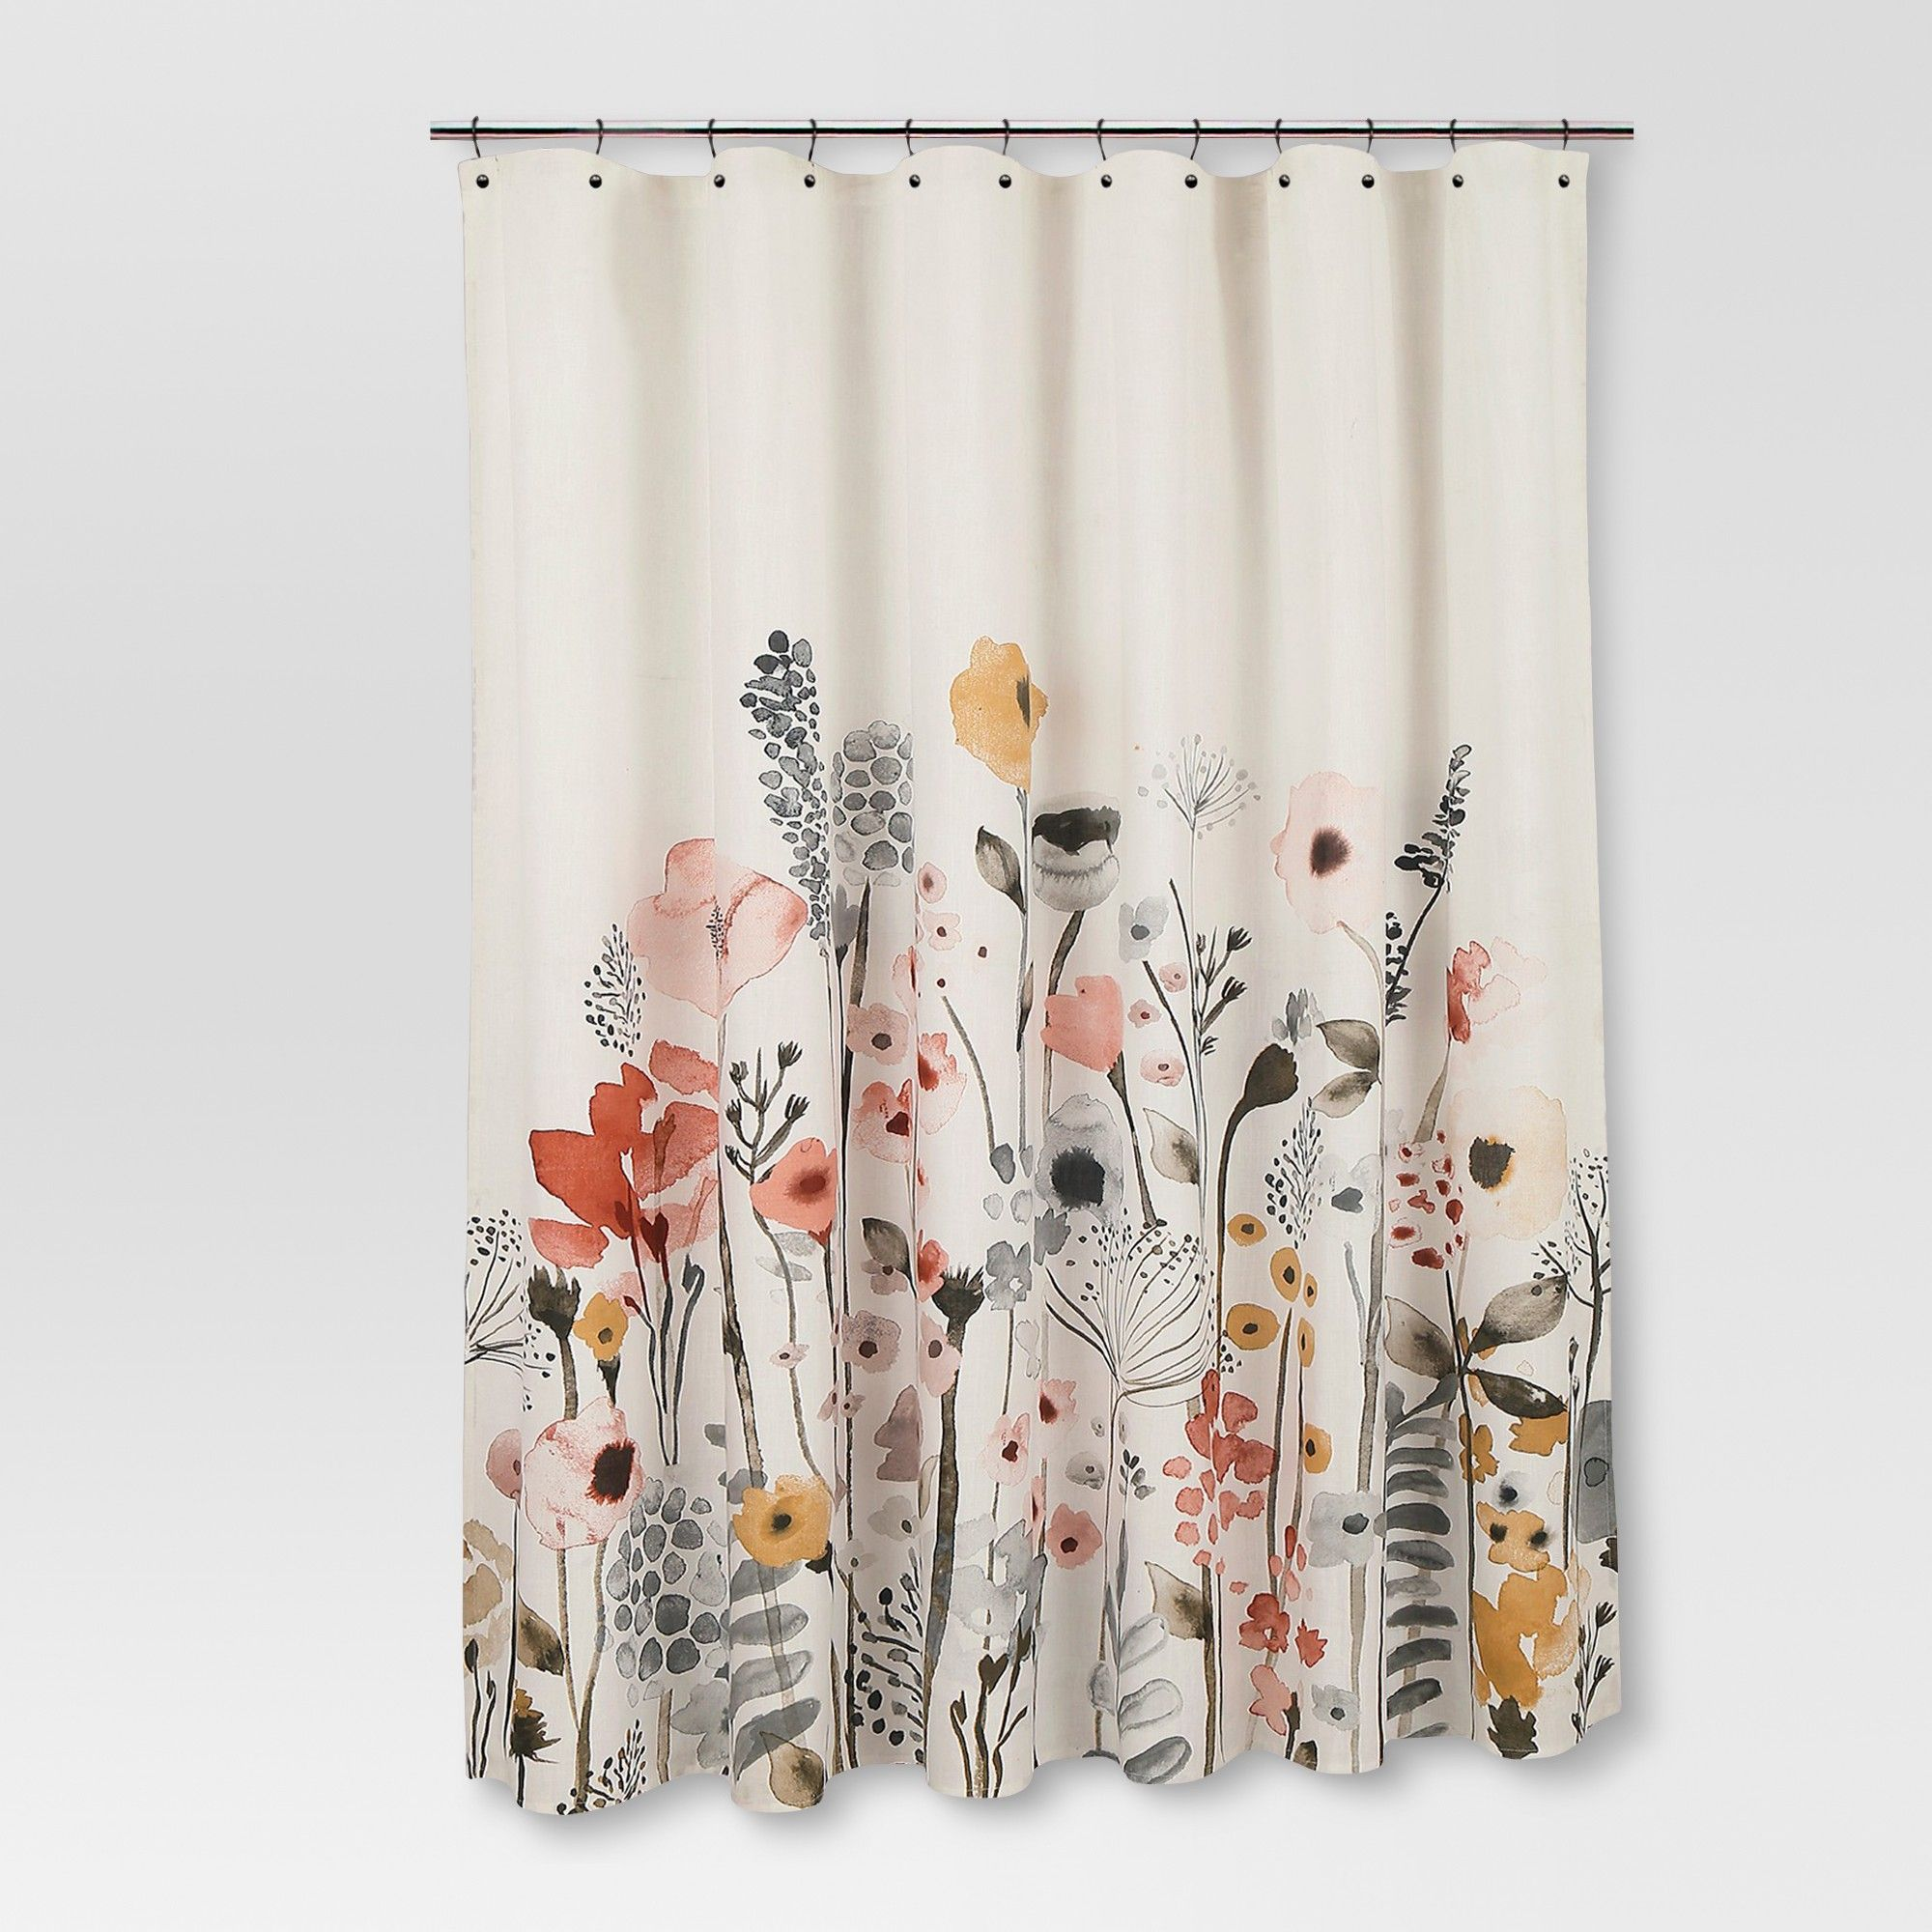 Shower Curtain Floral Wave Threshold Wave Dark Red Floral